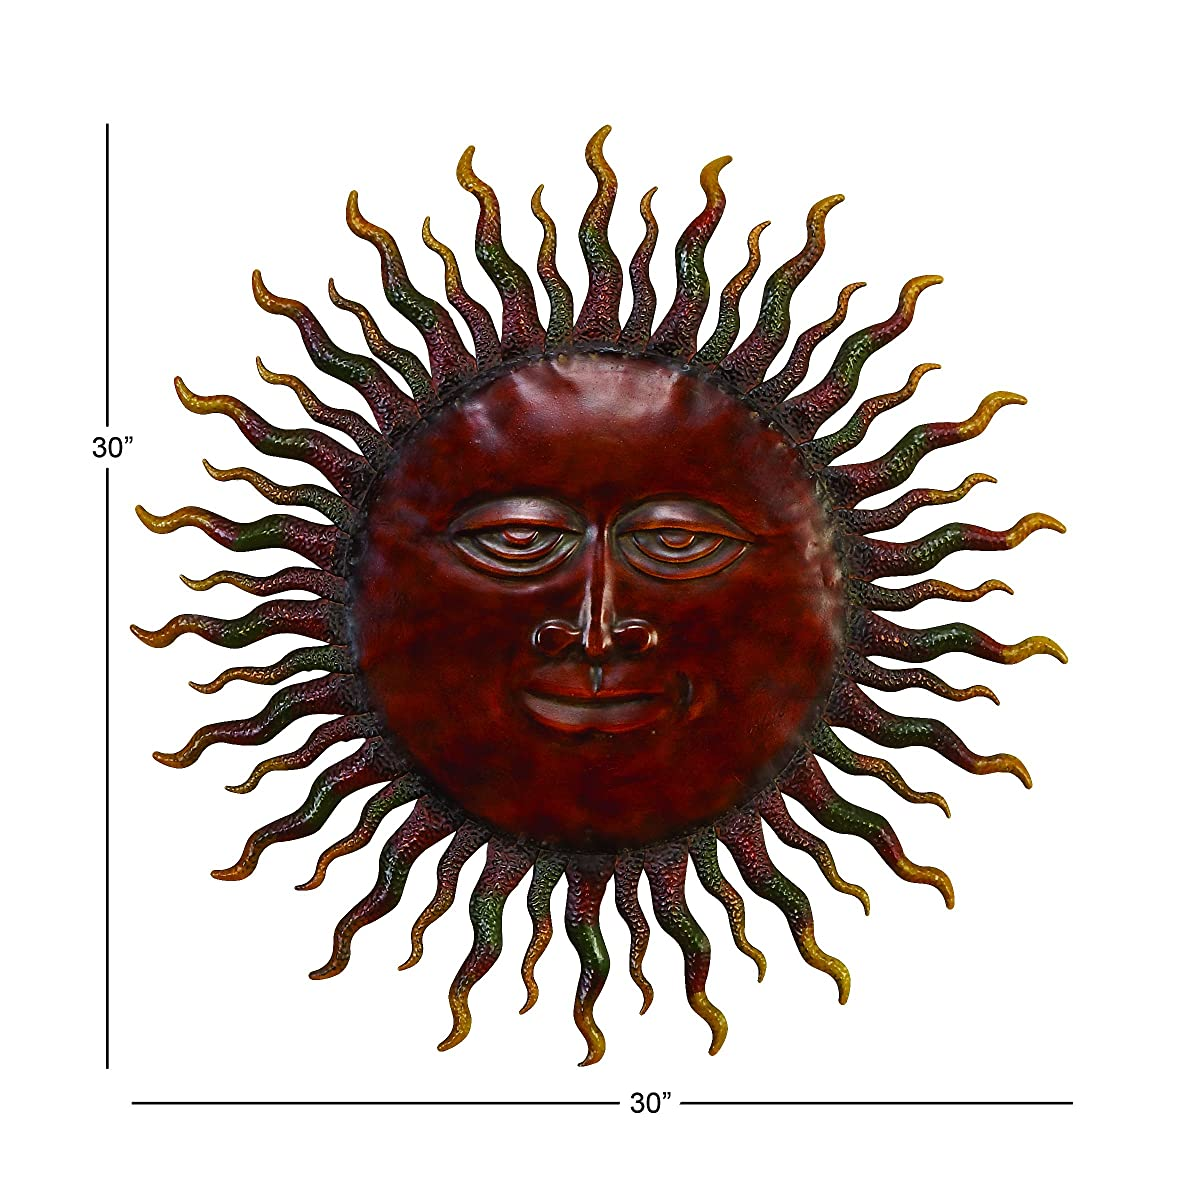 Deco 79 57752 Metal Rising Sun with Cosmic Rays Wall Decor, 30-Inch, Brown